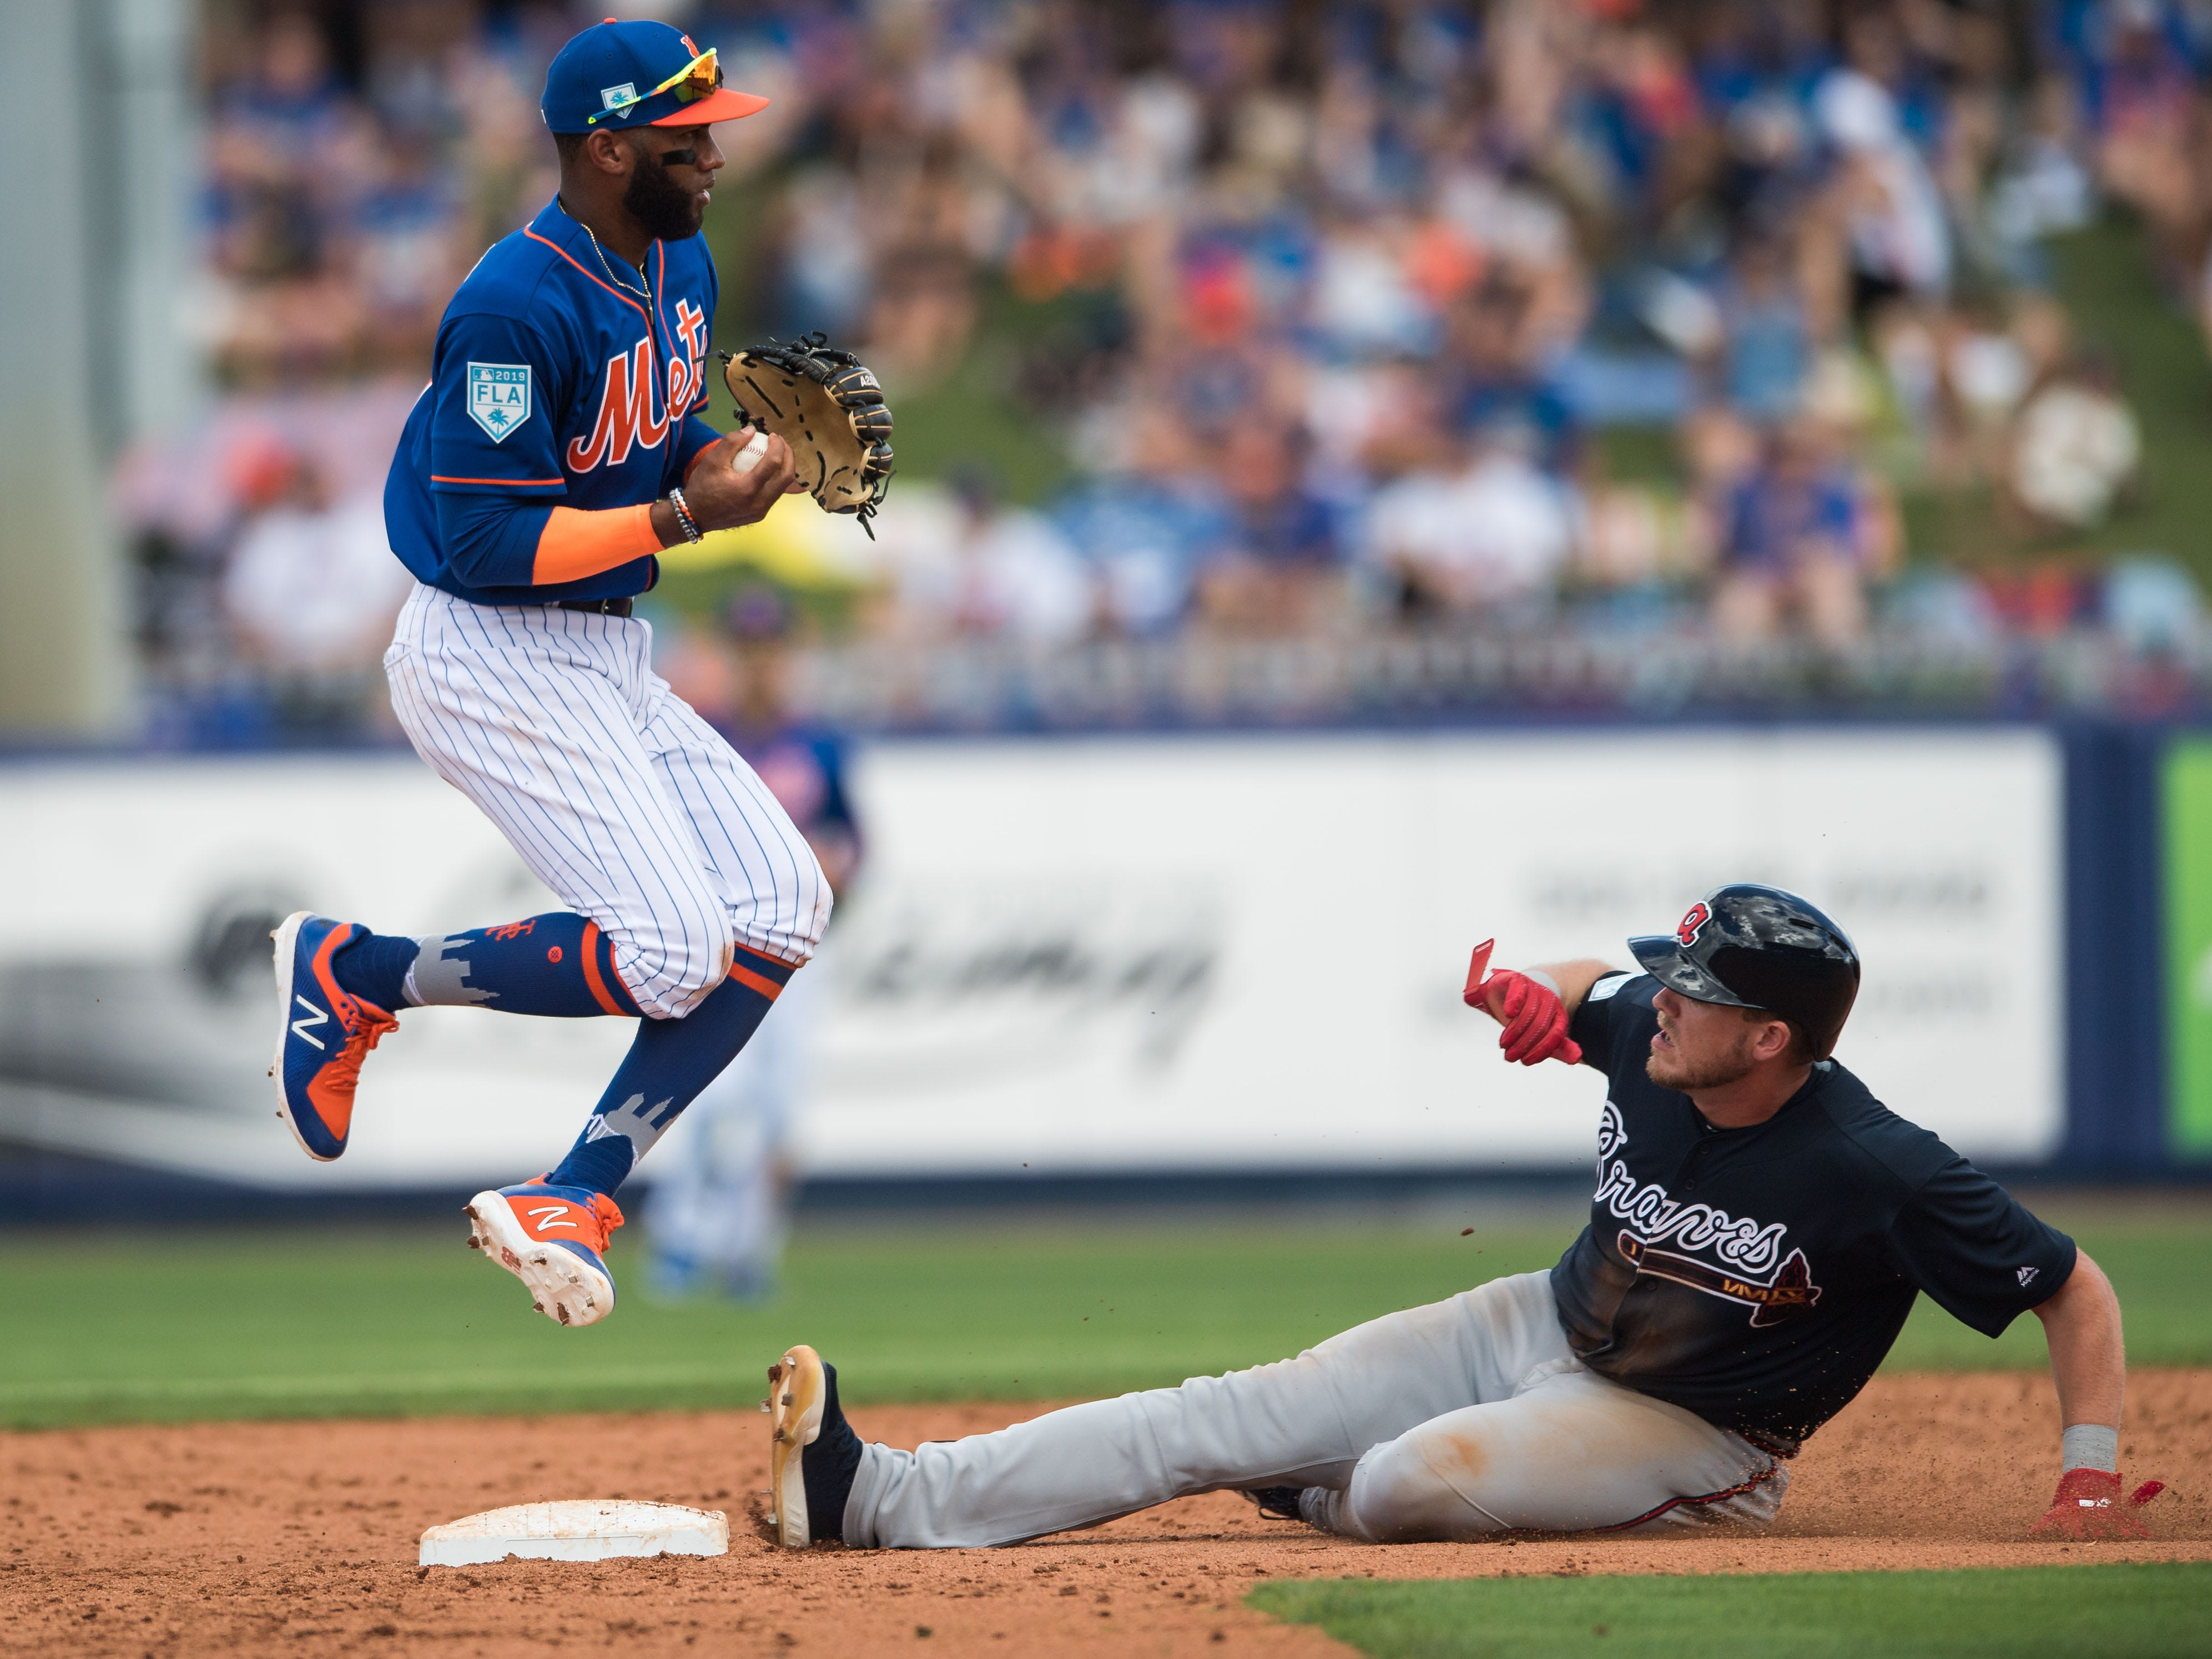 The New York Mets' Amed Roario forces Atlanta Braves baserunner Greyson Jenista out at second base during the fourth inning of their opening spring training game Saturday, Feb. 23, 2019, at First Data Field in Port St. Lucie.